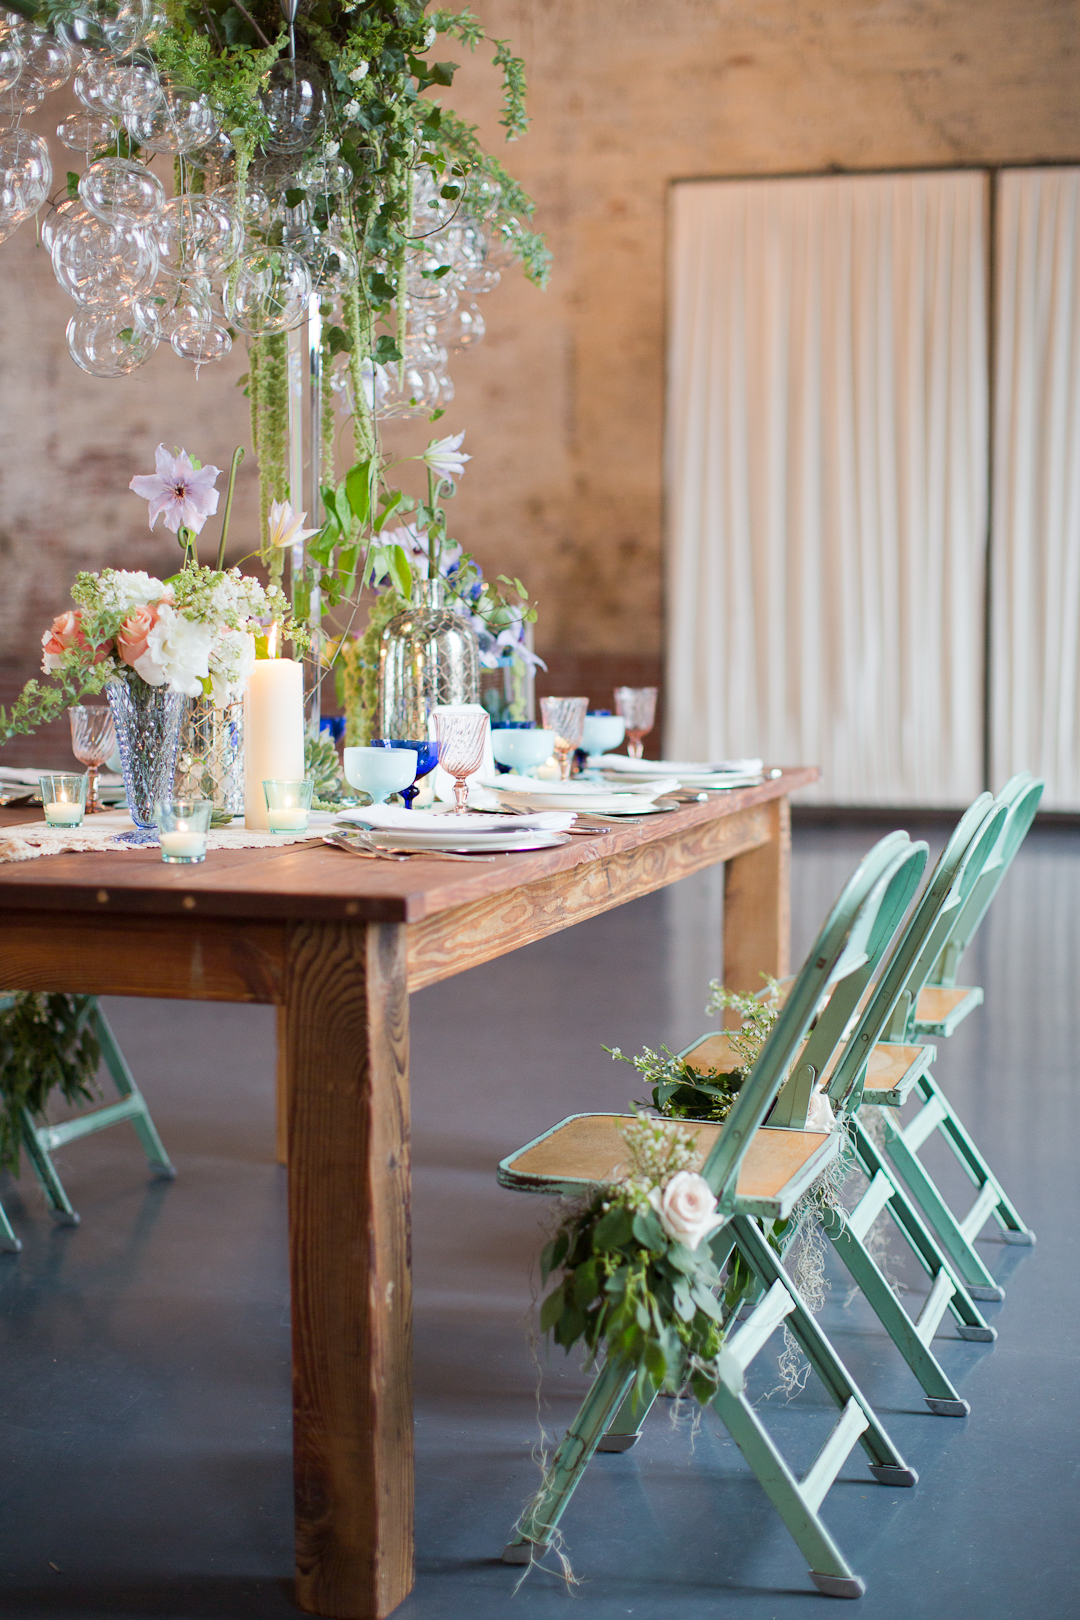 melissa kruse photography - bubbly bride styled shoot (the green building brooklyn) final web-371.jpg